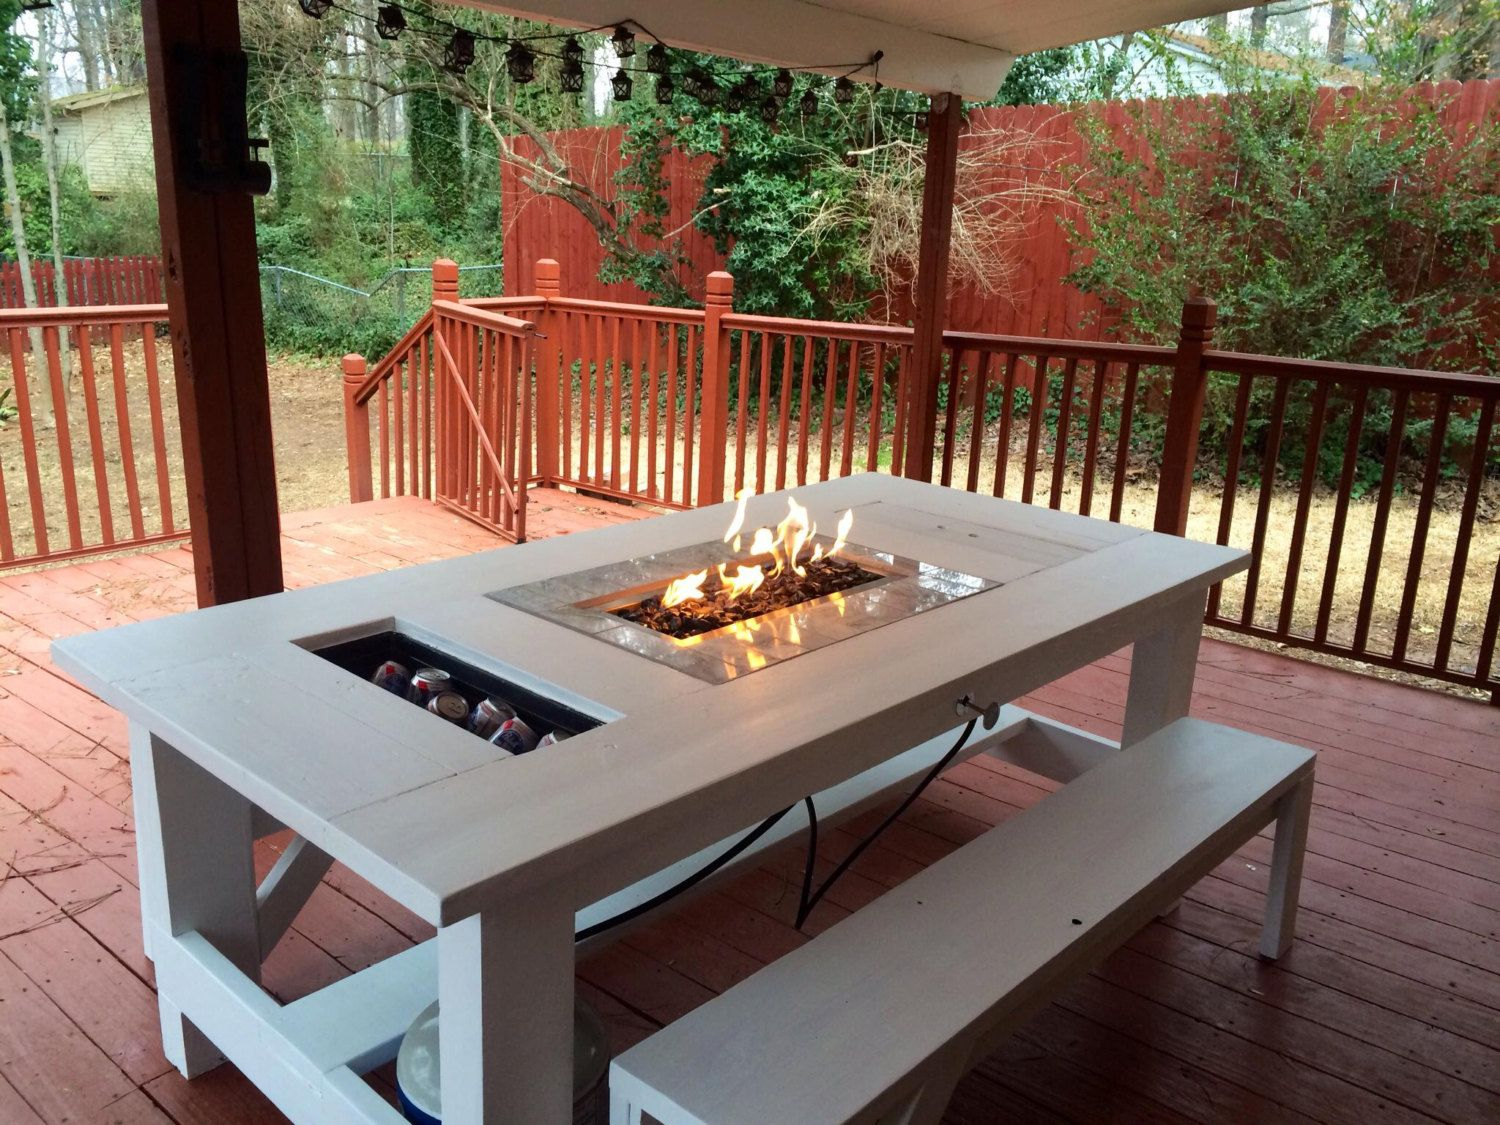 Outdoor Table With Cooler And Fire Pit Made To Order By